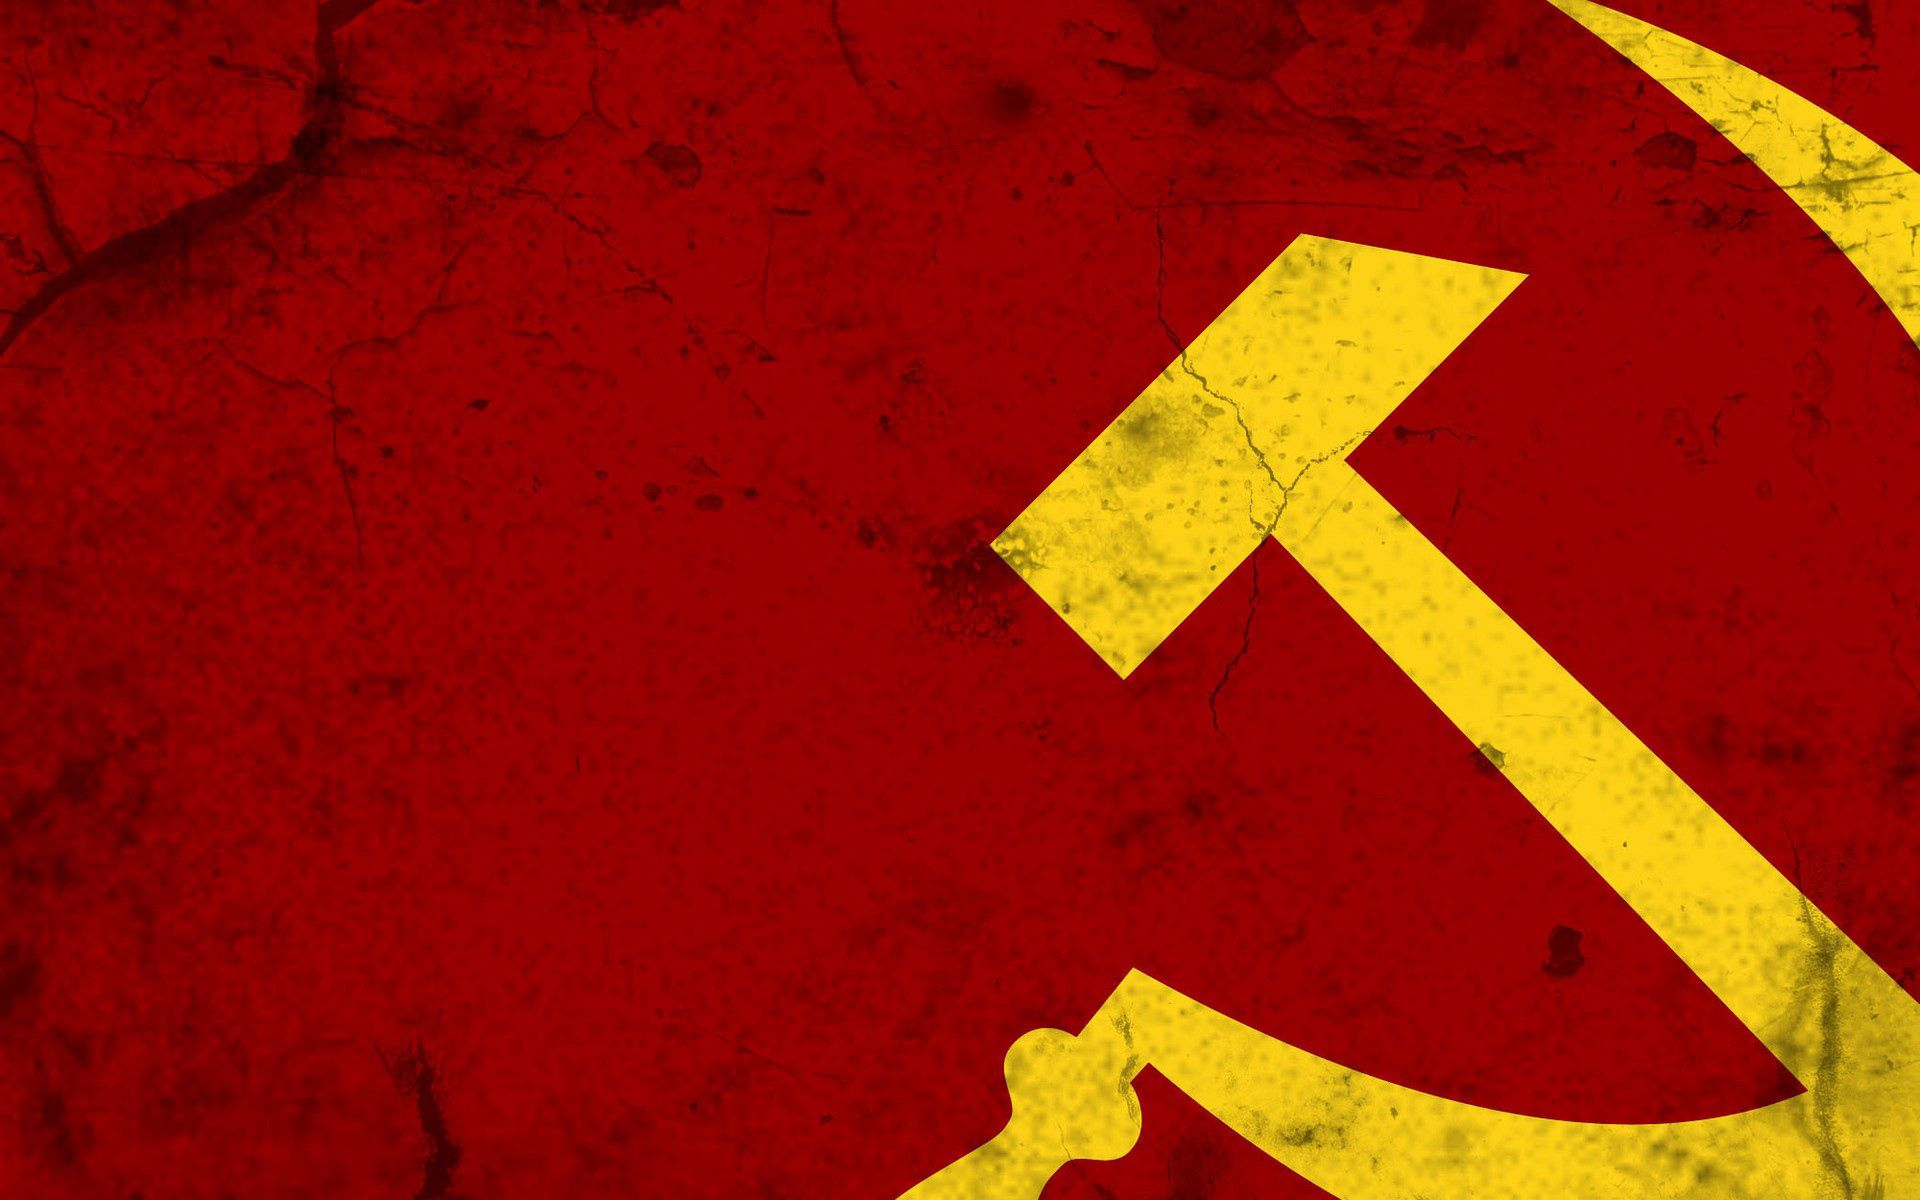 69153 Screensavers and Wallpapers Sssr for phone. Download Sssr, Miscellanea, Miscellaneous, Symbol, Russia, Flag, Sickle And Hammer, Hammer And Sickle pictures for free